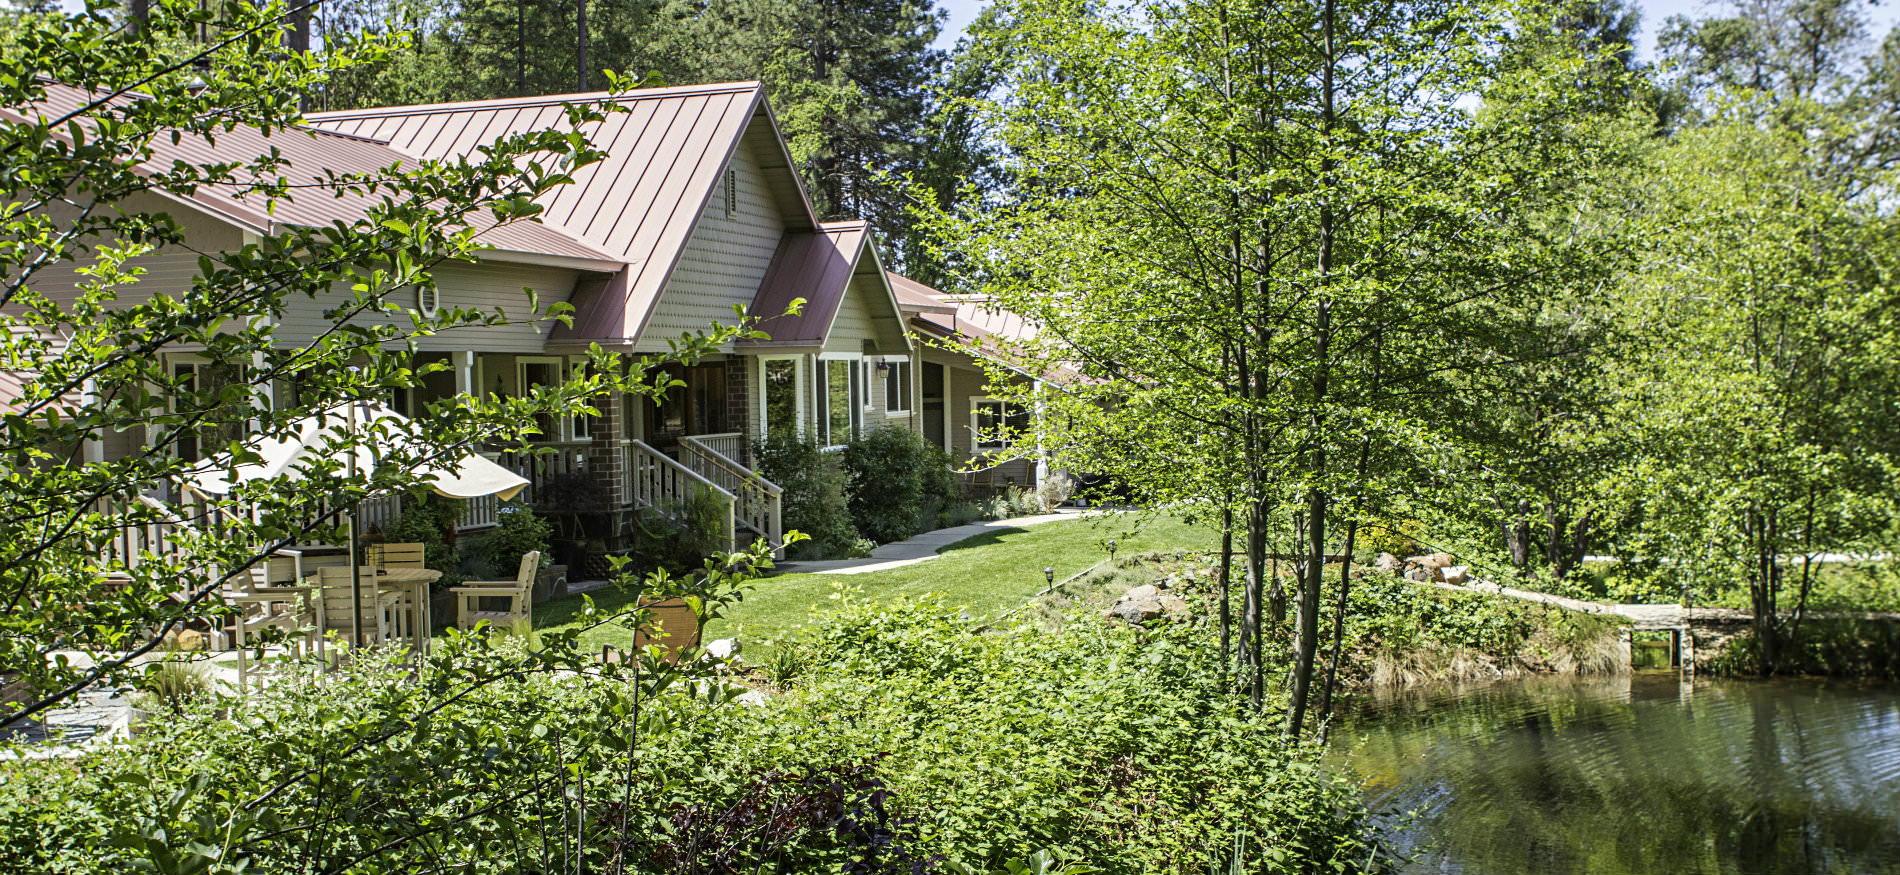 Exterior view of tan cottage with red metal gable roof, lots of lush greenery, a pond and blue skies